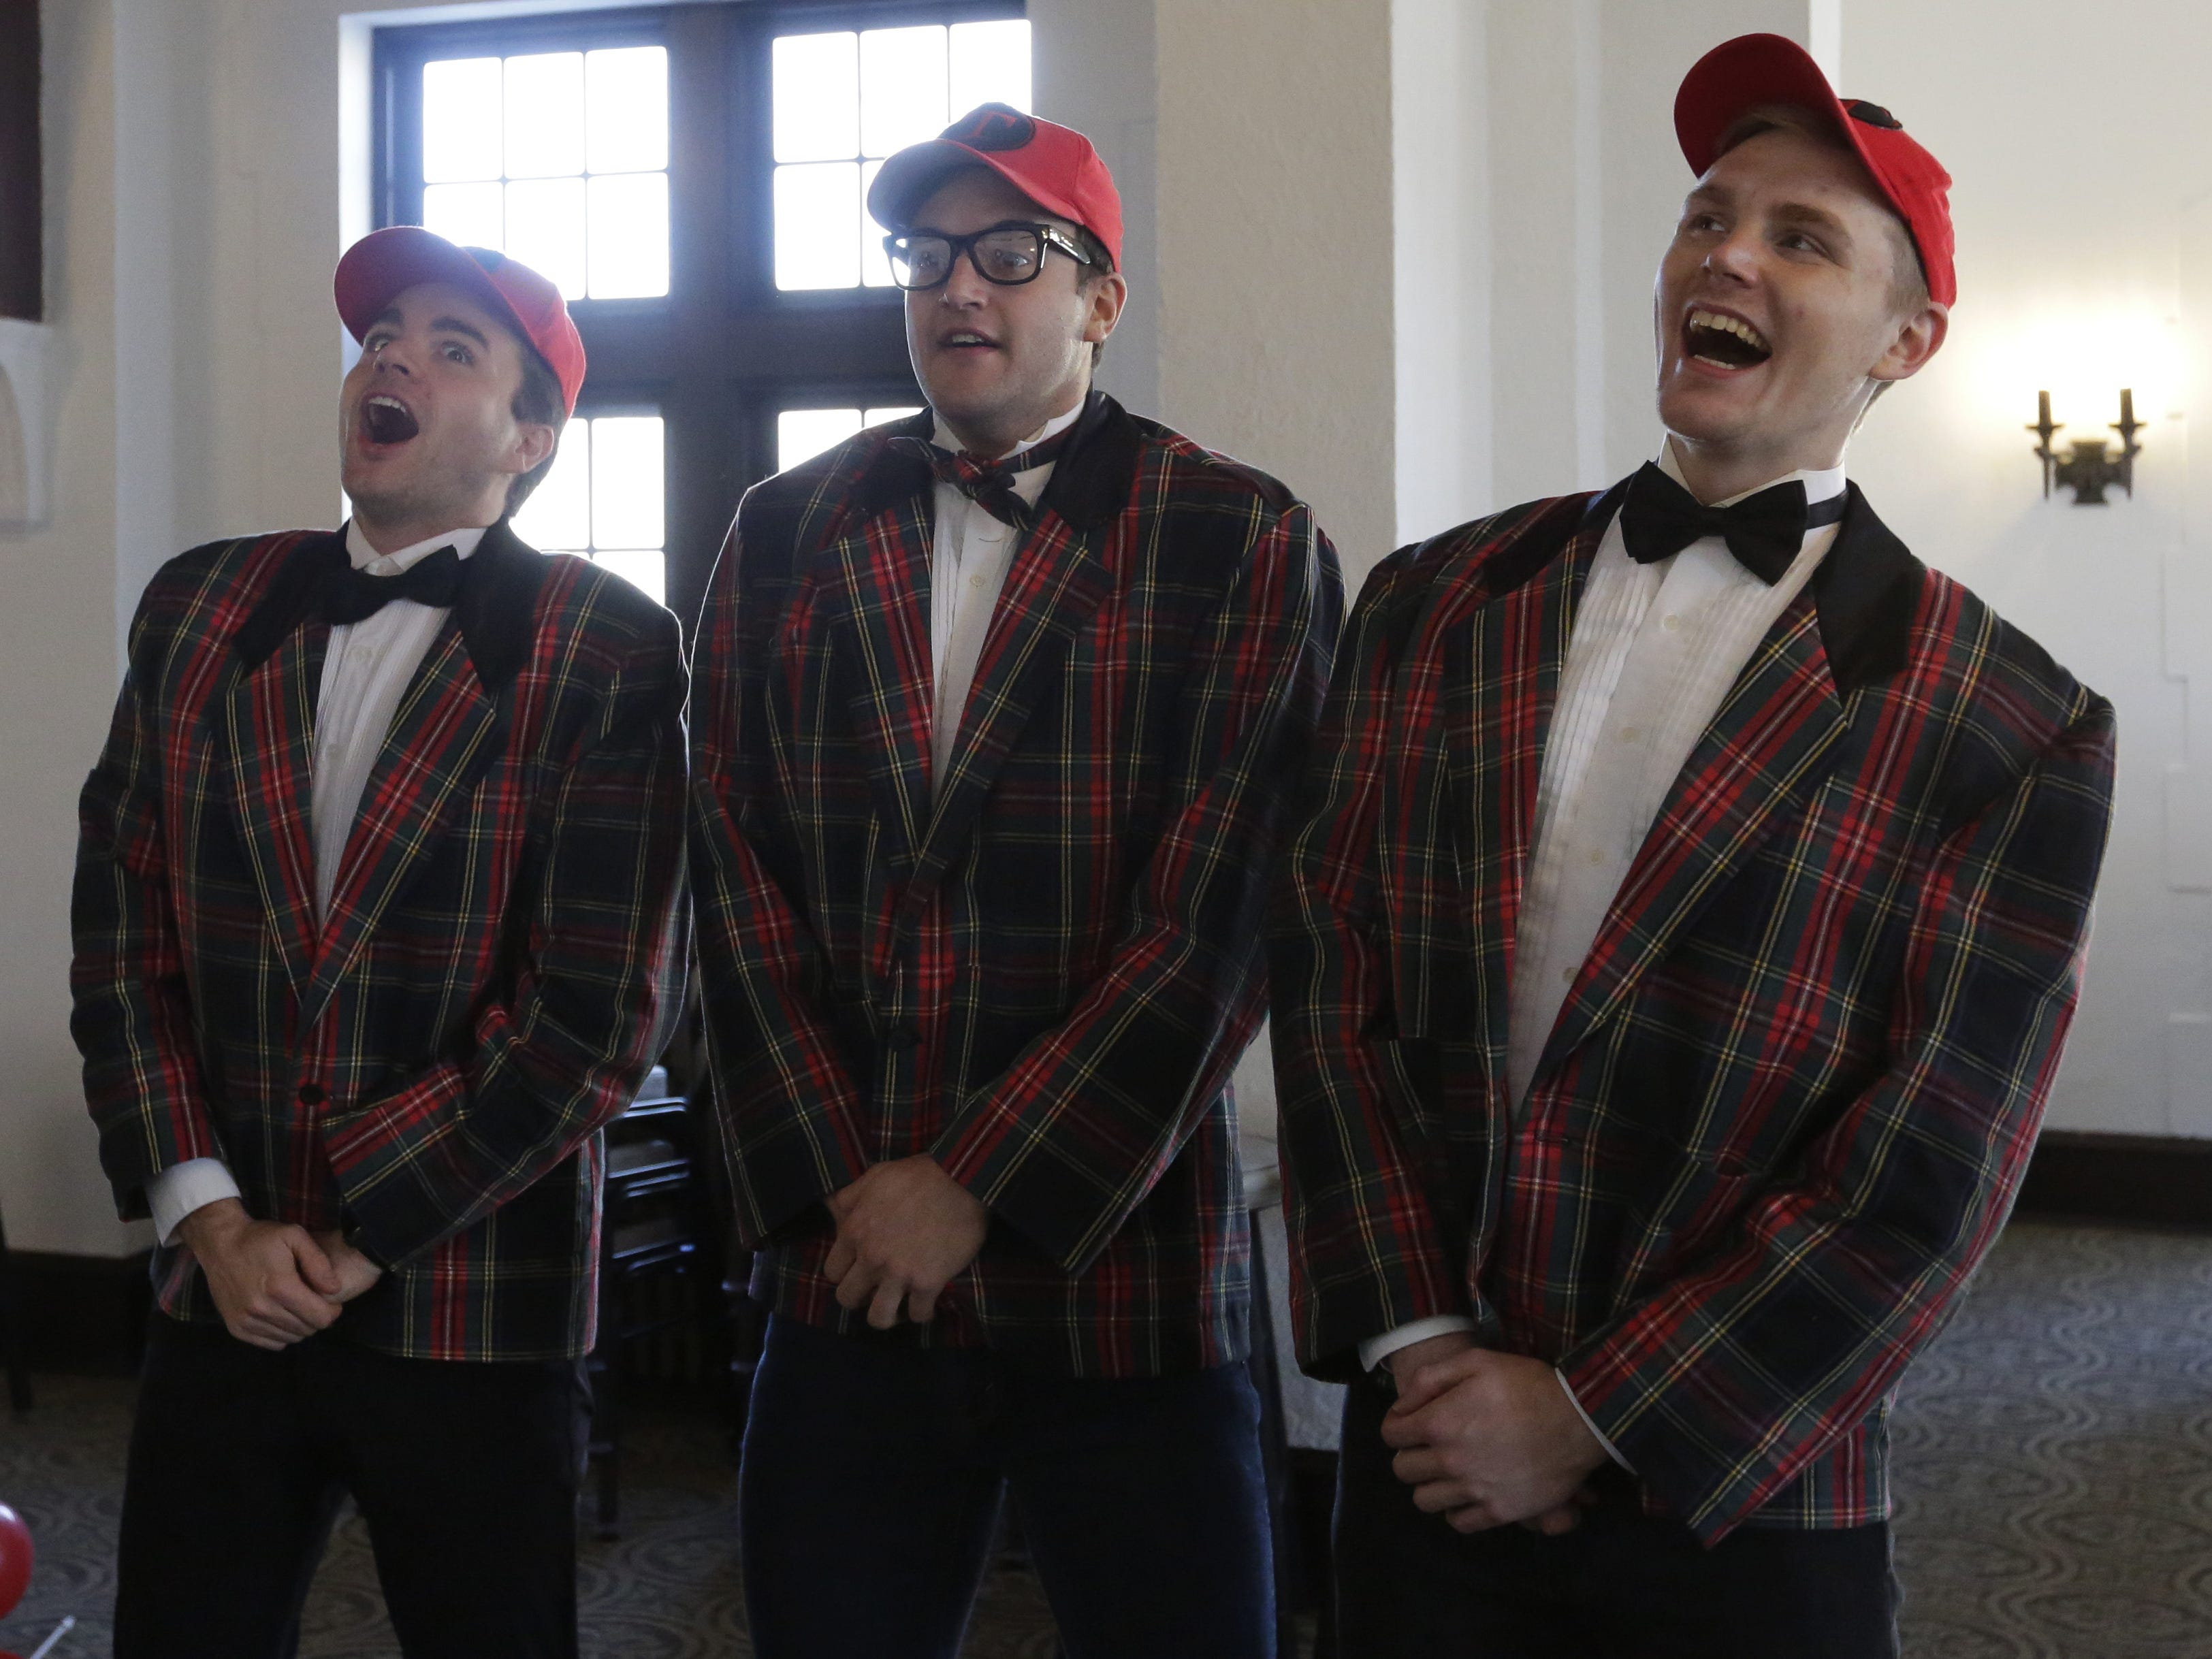 """Carver Duncan, Brian Krinsky, and Bryce Dutton rehearse Thursday, Dec. 6, 2018, for the dinner theater presentation """"Forever Plaid: Plaid Tidings,"""" which opens Dec. 13, 2018, at The Howard in Oshkosh."""